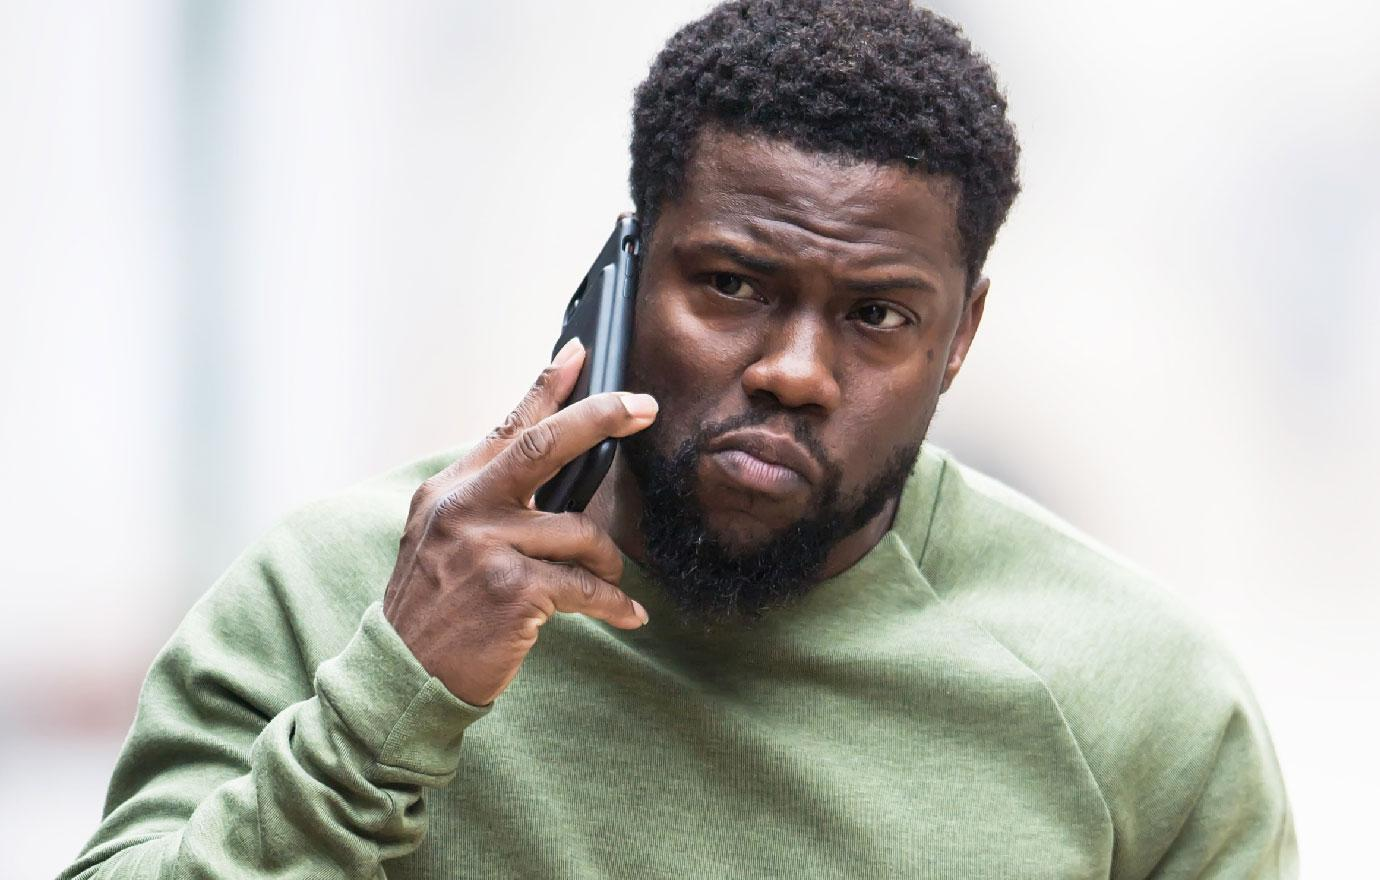 Kevin Hart Admits Cheating On Pregnant Wife Video Extortion Attempt